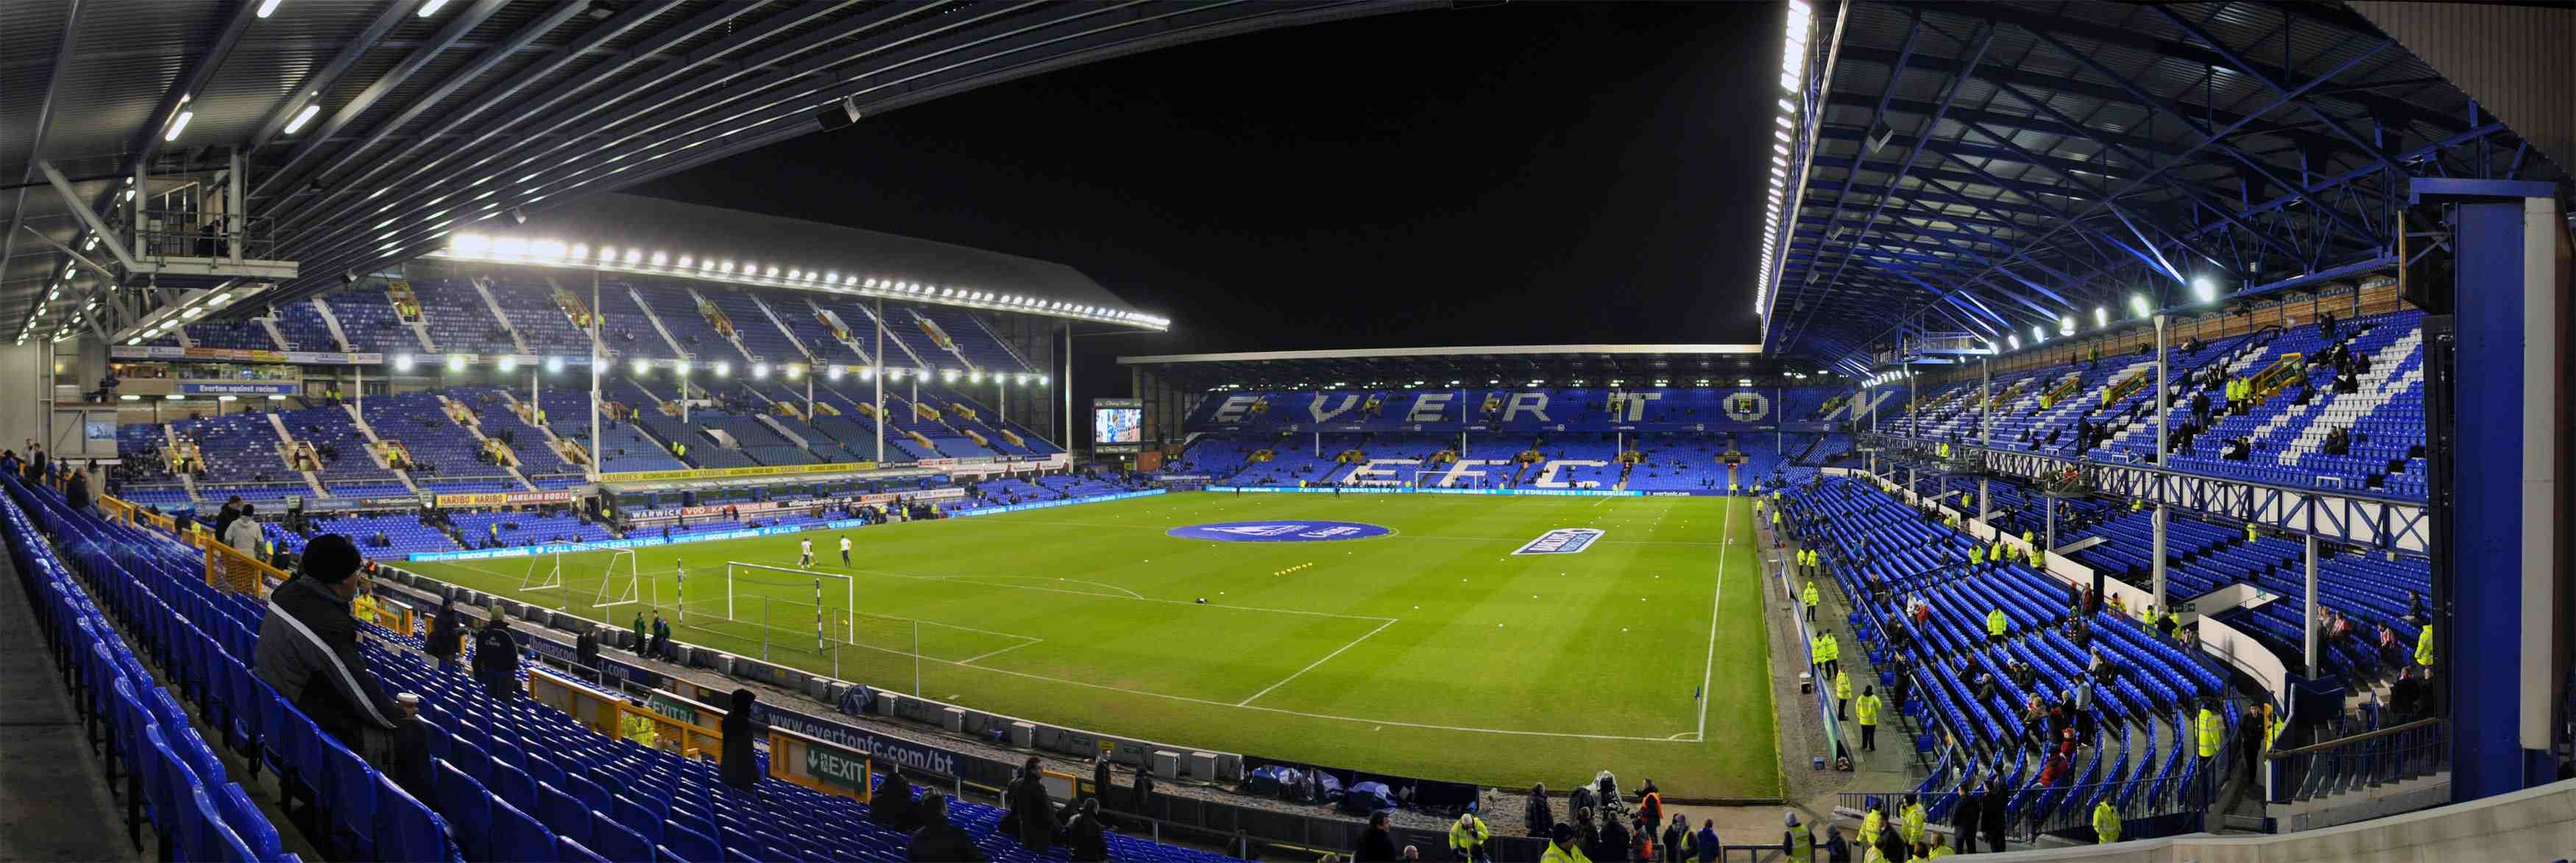 Goodison Park Hd Wallpaper Background Image 3500x1172 Id 541138 Wallpaper Abyss